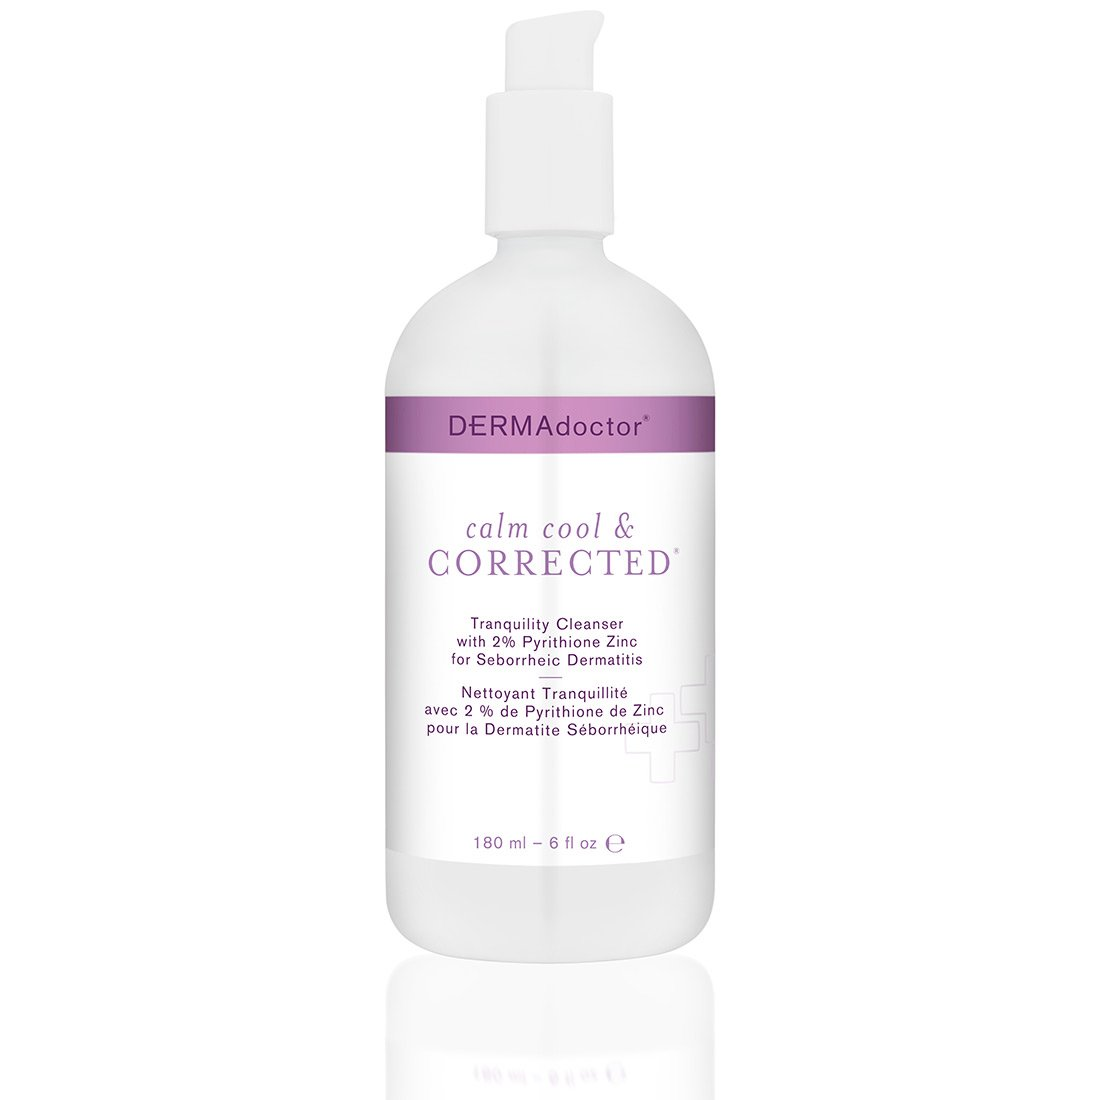 ダーマドクター Calm Cool & Corrected Tranquility Cleanser 180ml/6oz   B019EKOK6G